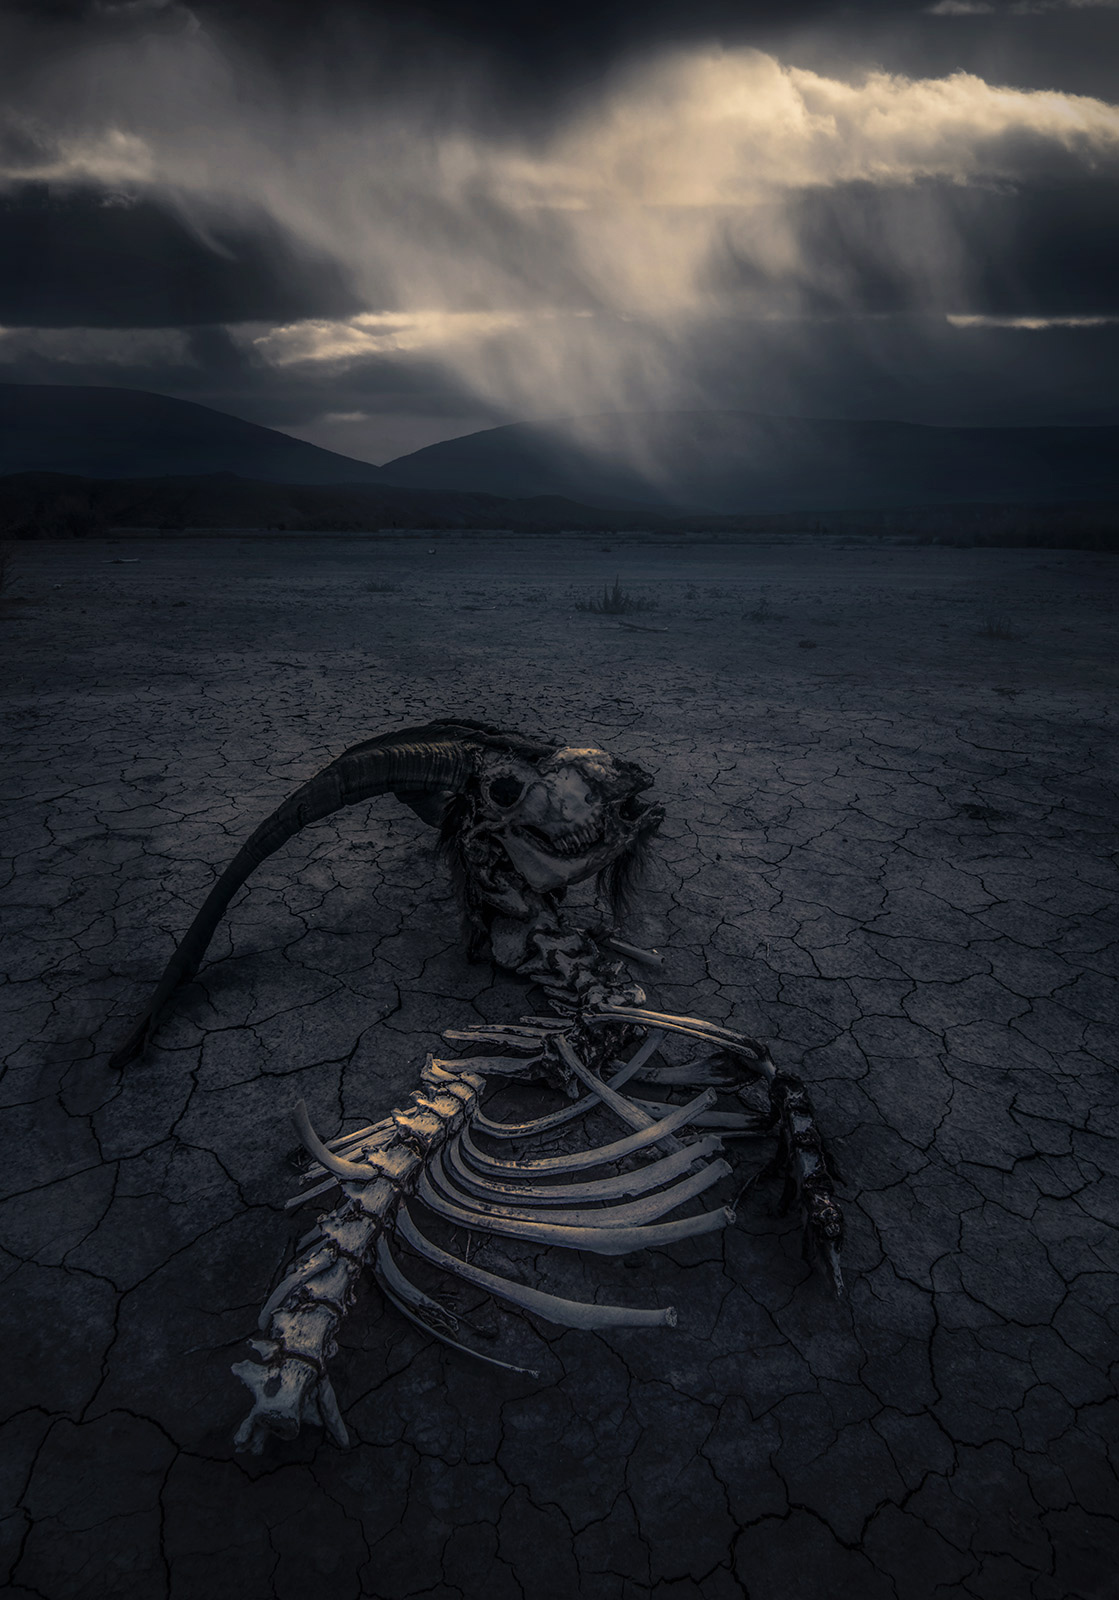 death, skeleton, dying, ominous, cracked, desert, skull, southwest, photo